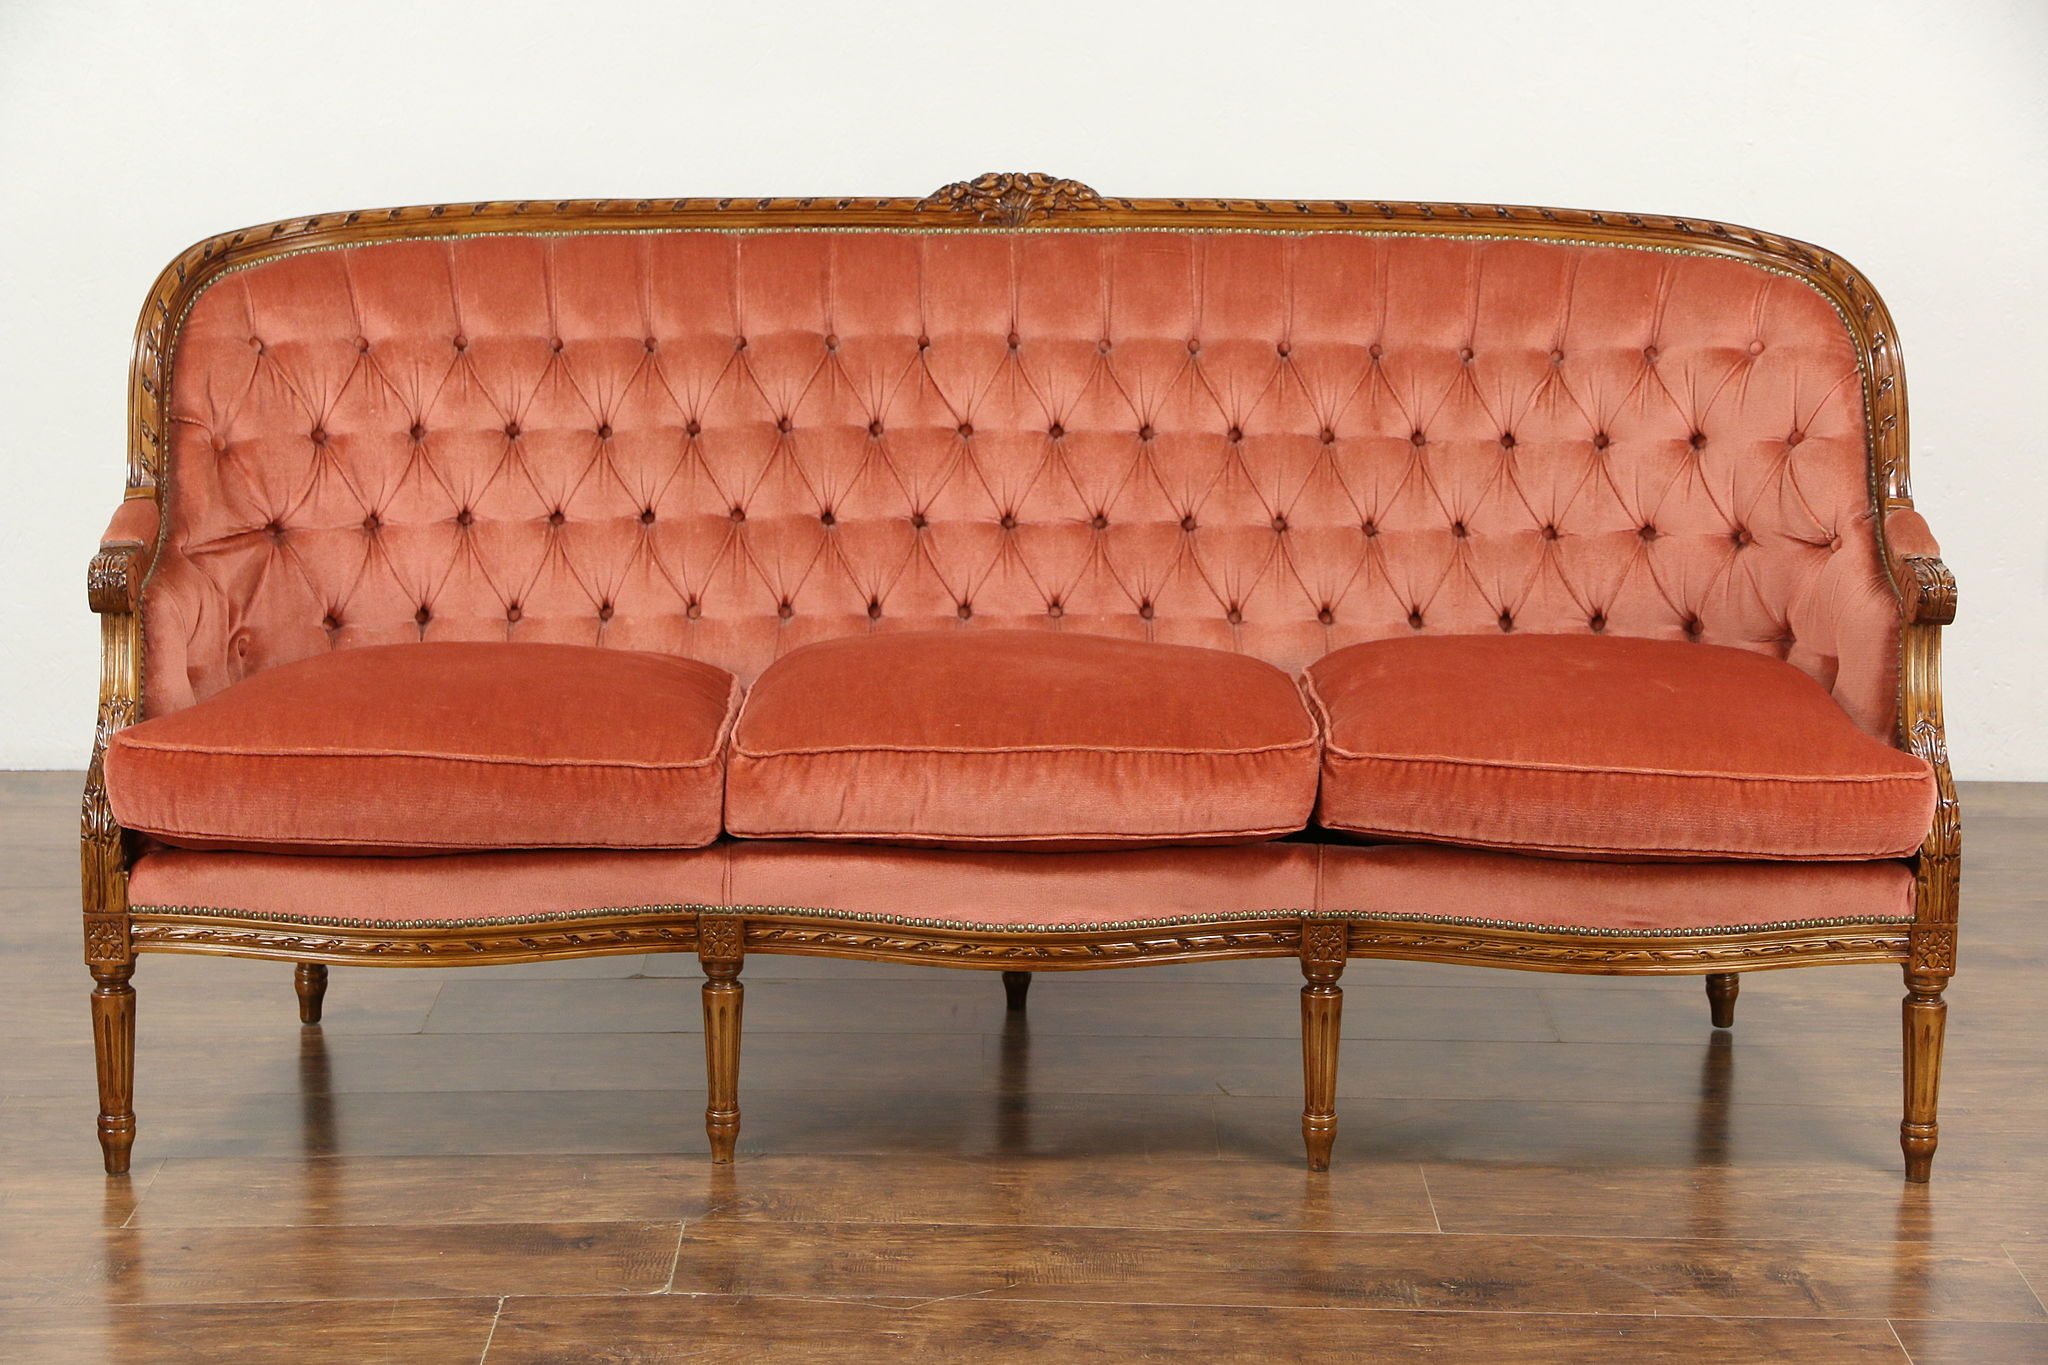 Etonnant French Louis XVI Style Vintage Carved Sofa, Tufted Upholstery